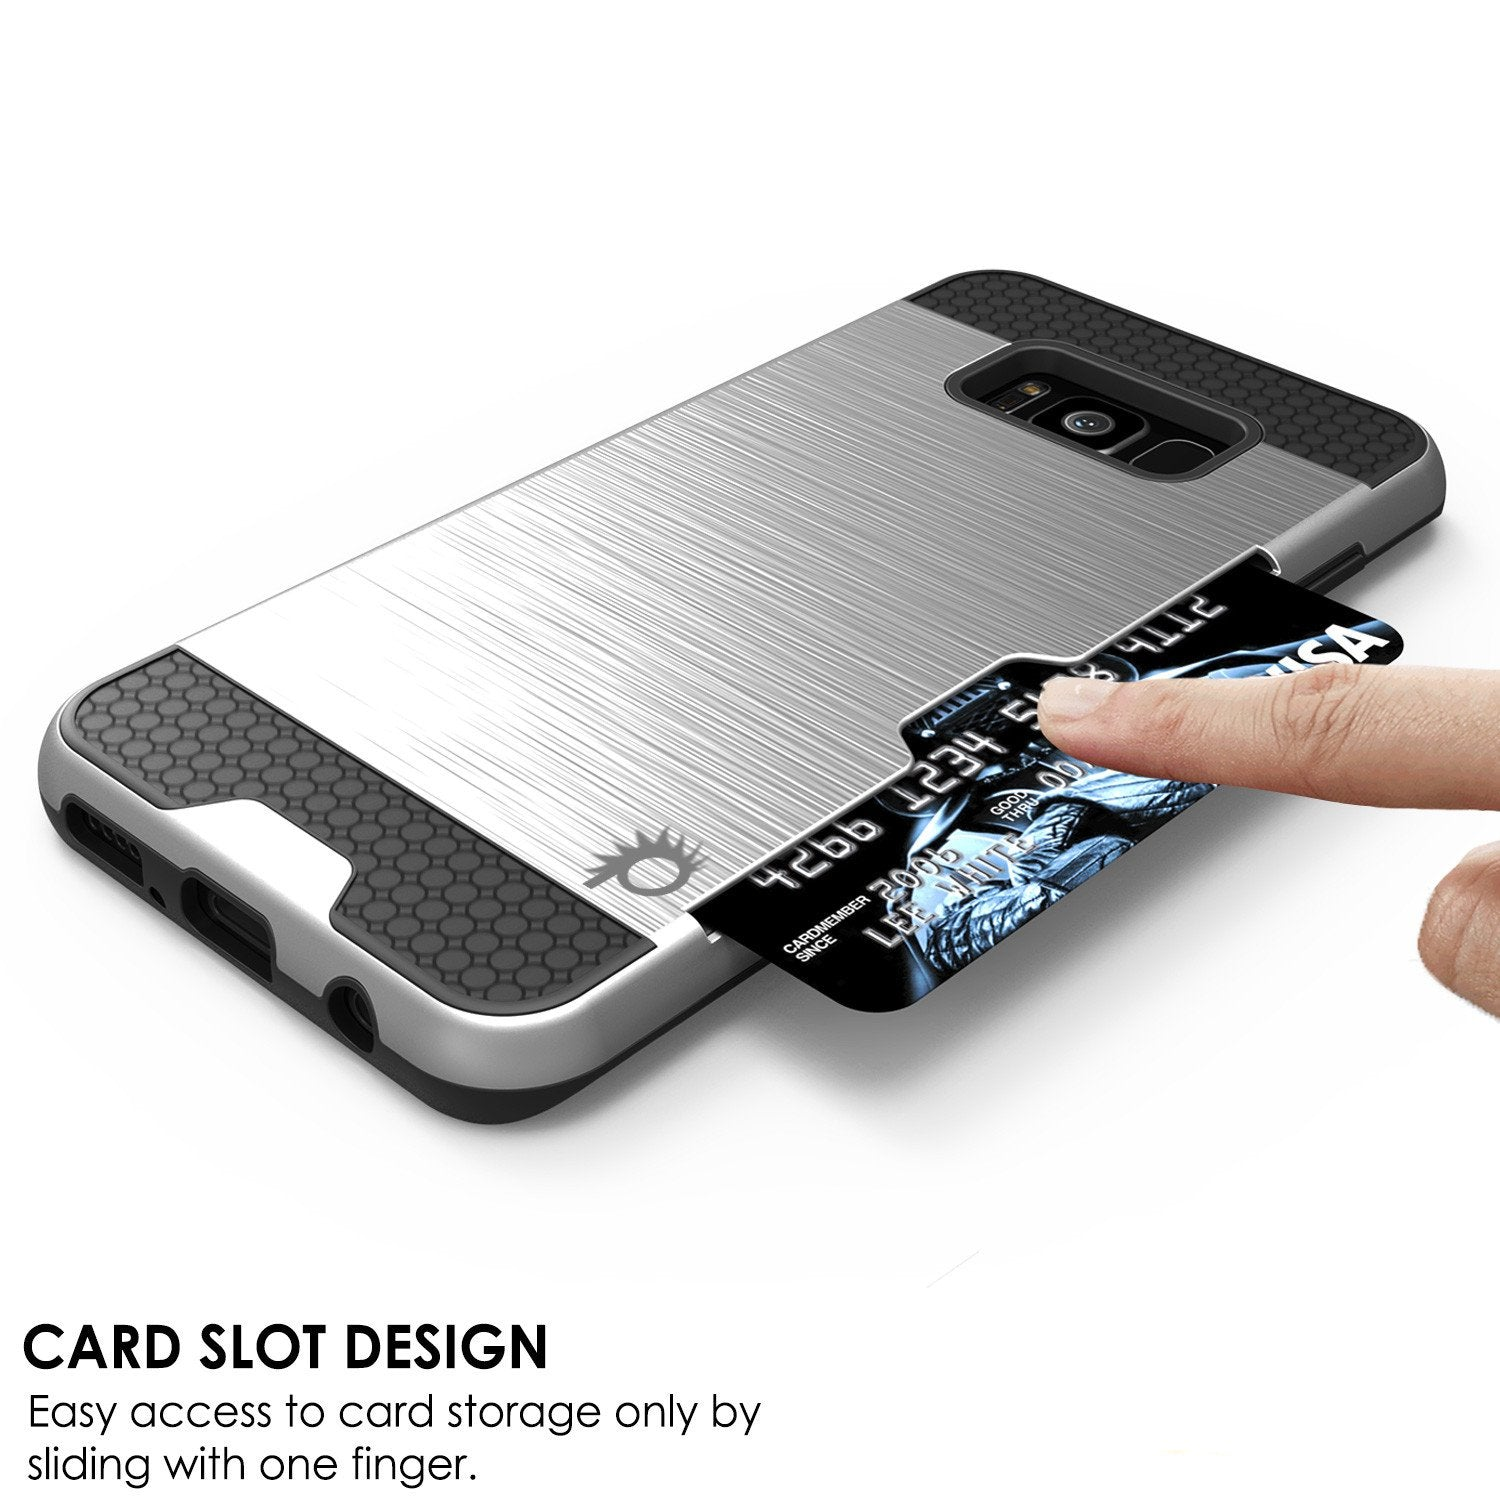 Galaxy S8 Case, PUNKcase [SLOT Series] [Slim Fit] Dual-Layer Armor Cover w/Integrated Anti-Shock System, Credit Card Slot [Silver]